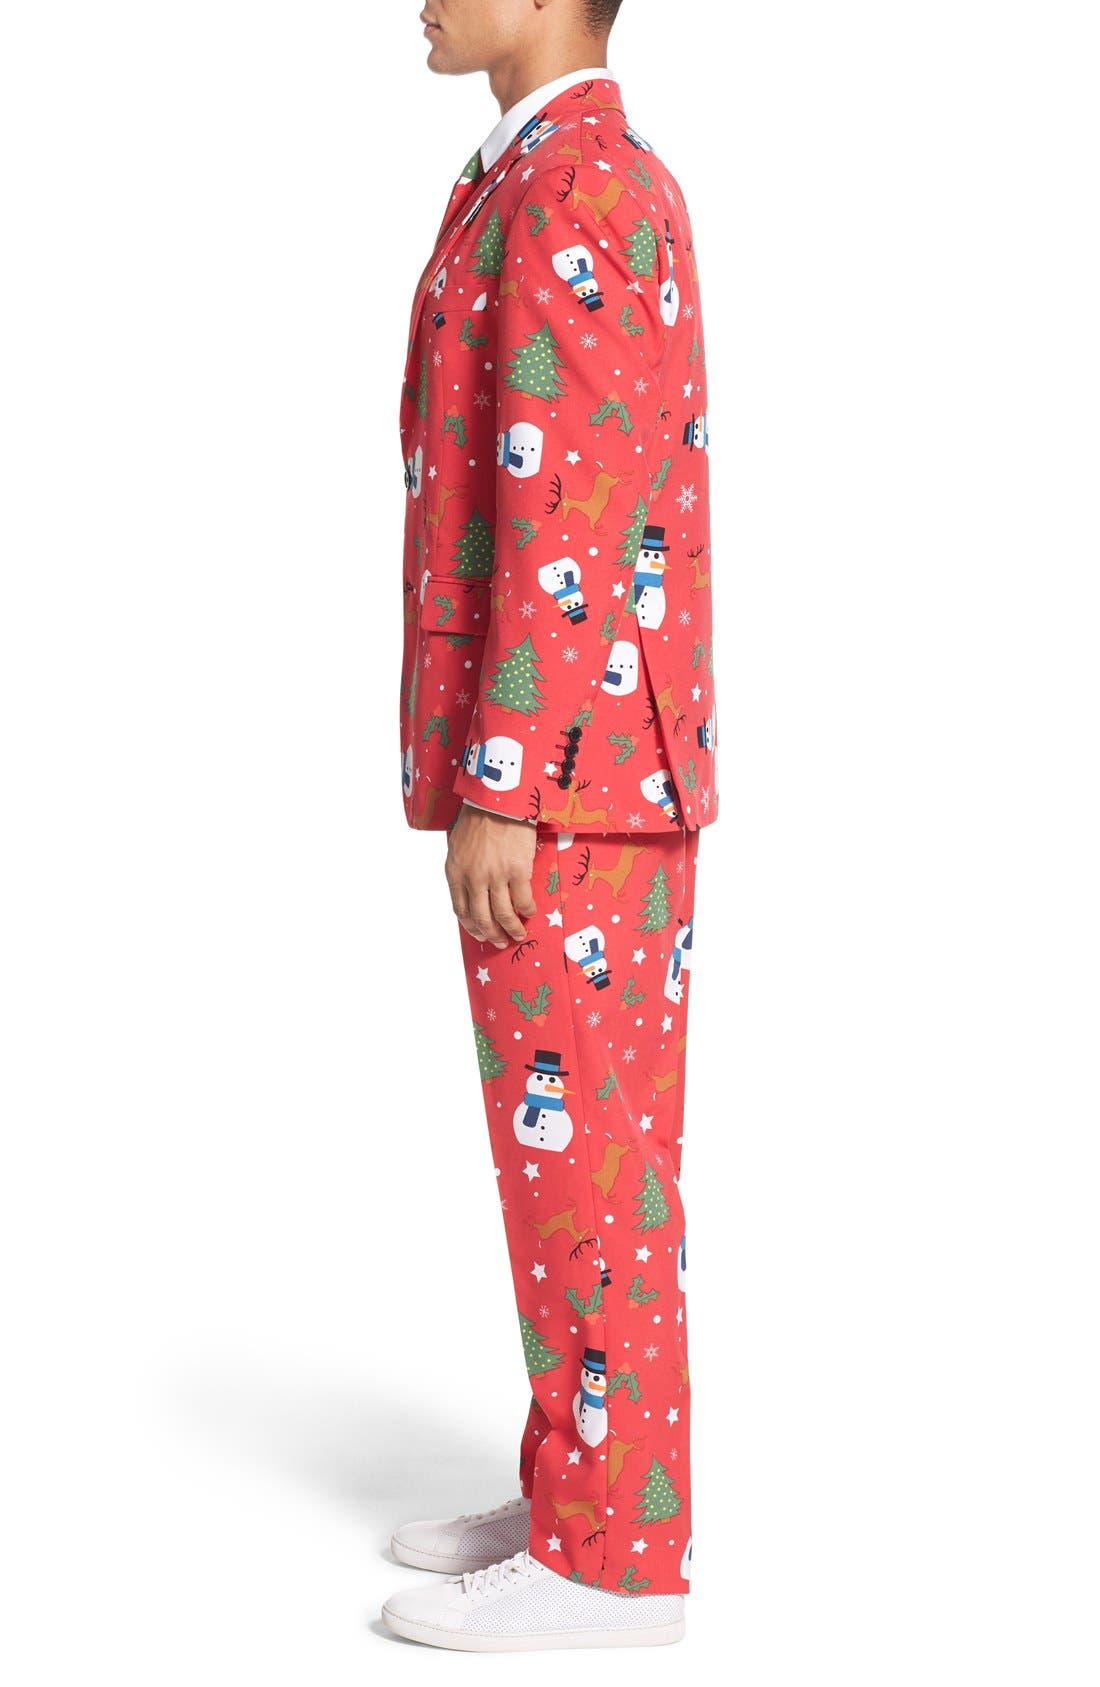 'Christmaster' Holiday Suit & Tie,                             Alternate thumbnail 3, color,                             600